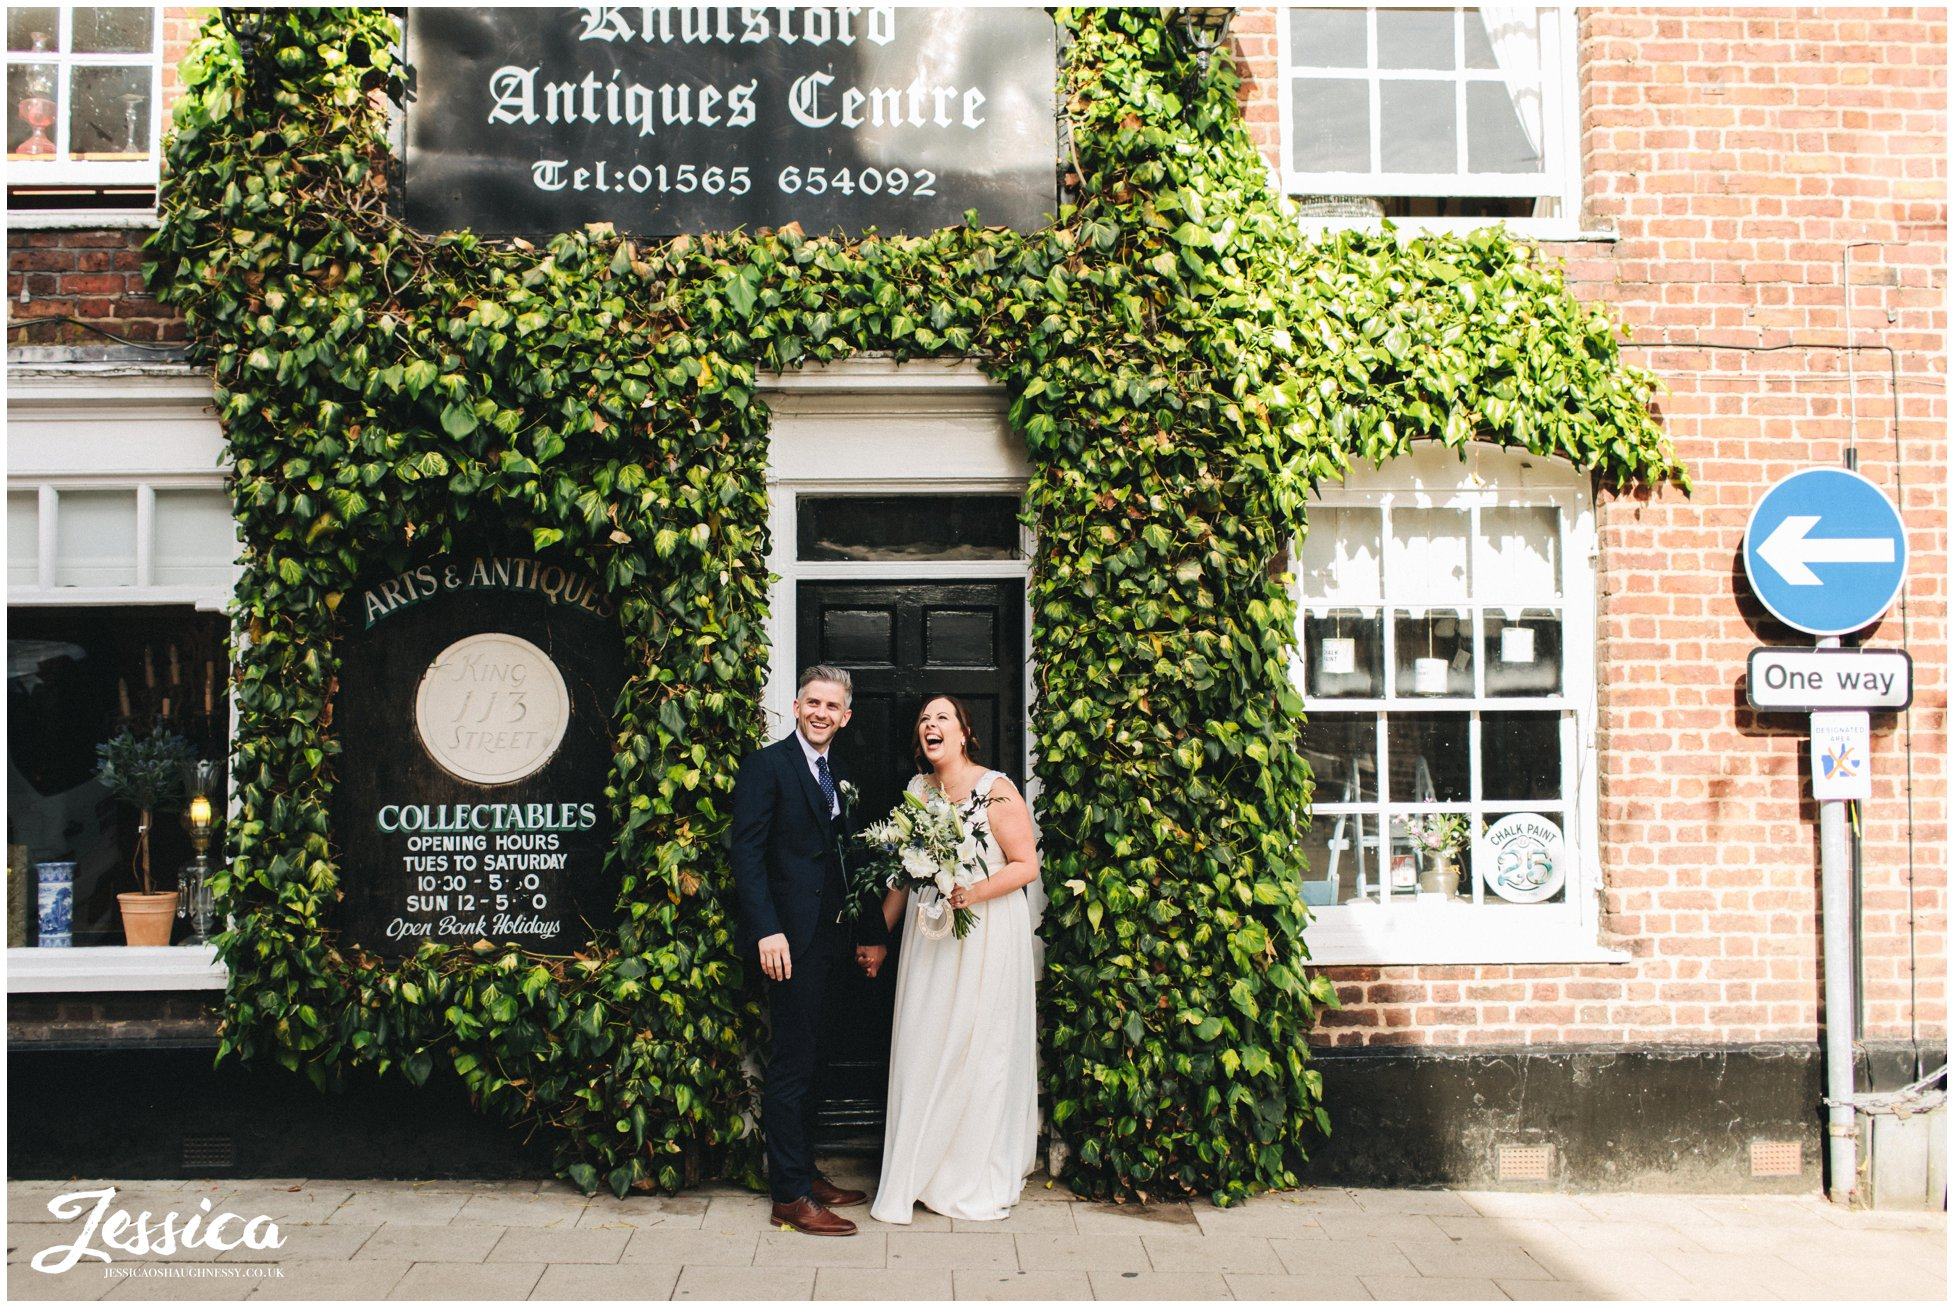 the couple laugh standing in a quirky doorway on knutsford high street